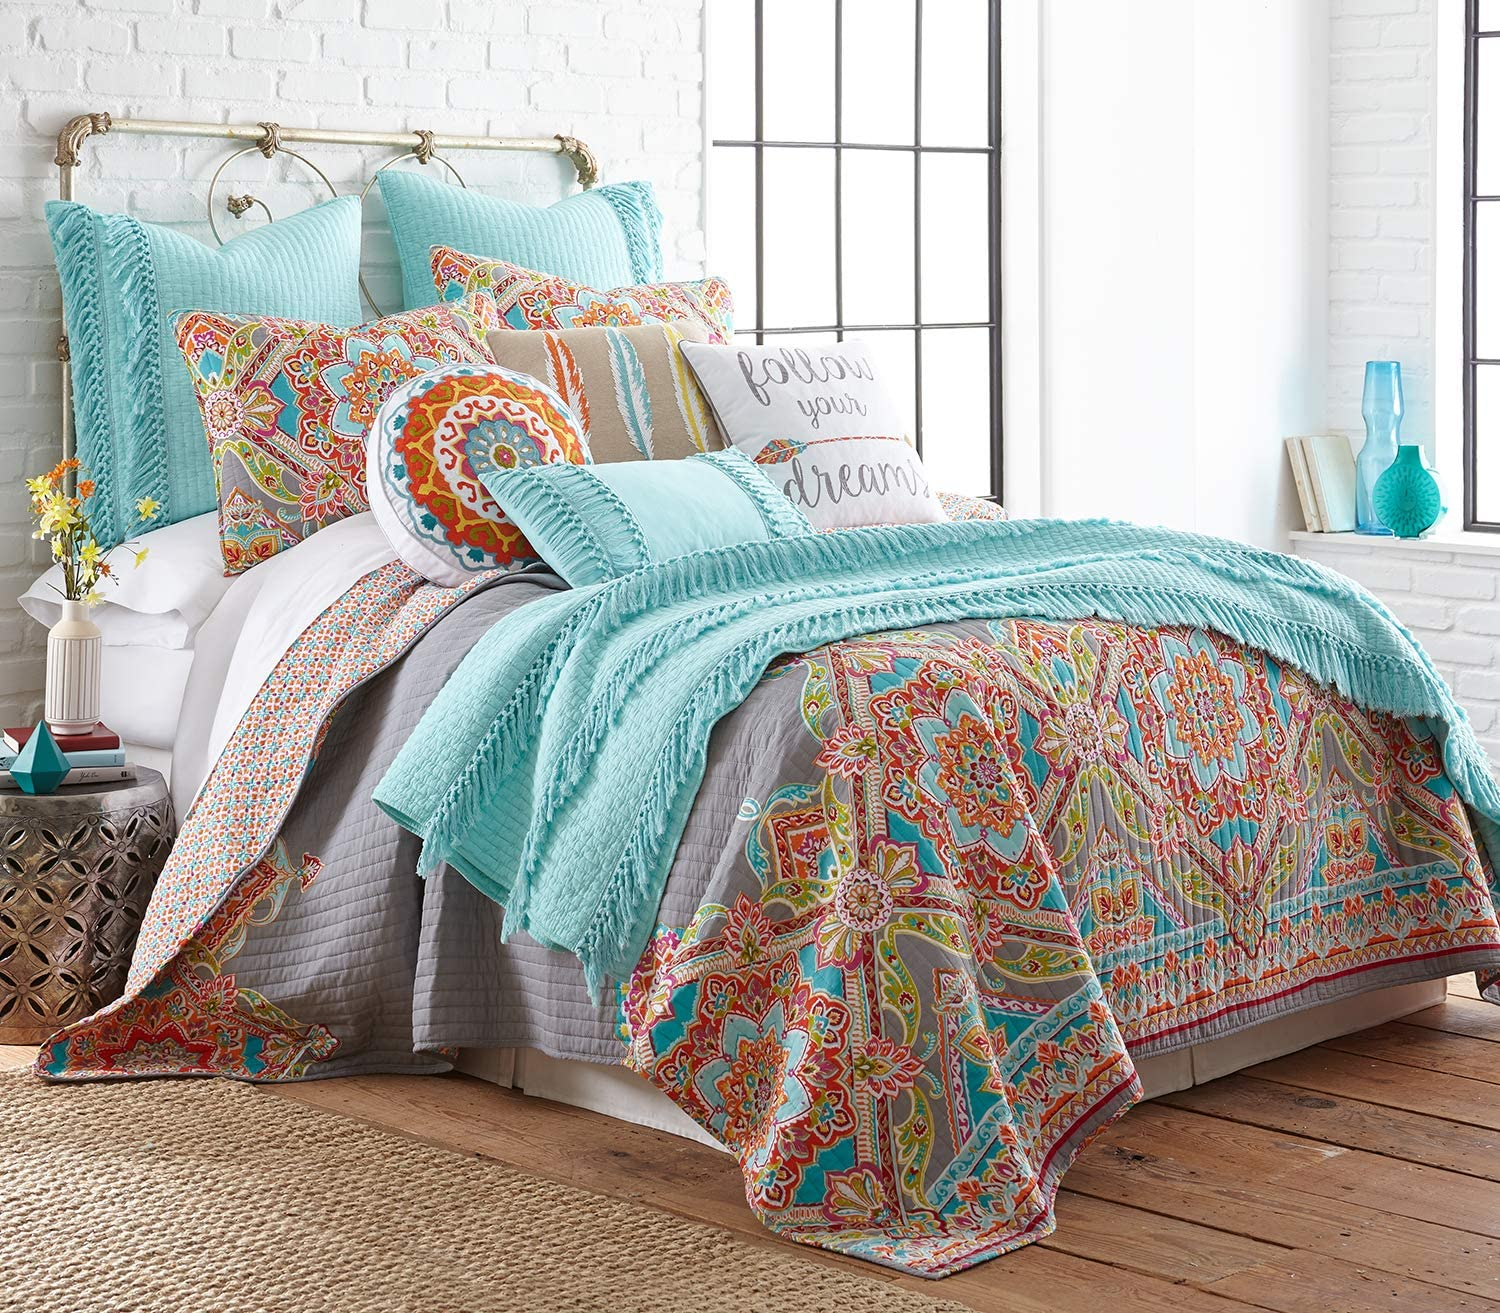 Levtex home - Bailen Quilt Set - Full/Queen Quilt + Two Standard Pillow Shams - Boho Medallion in Orange Teal Red Grey Green Pink - Quilt (88x92in.) and Pillow Shams (26x20in.) - Reversible - Cotton